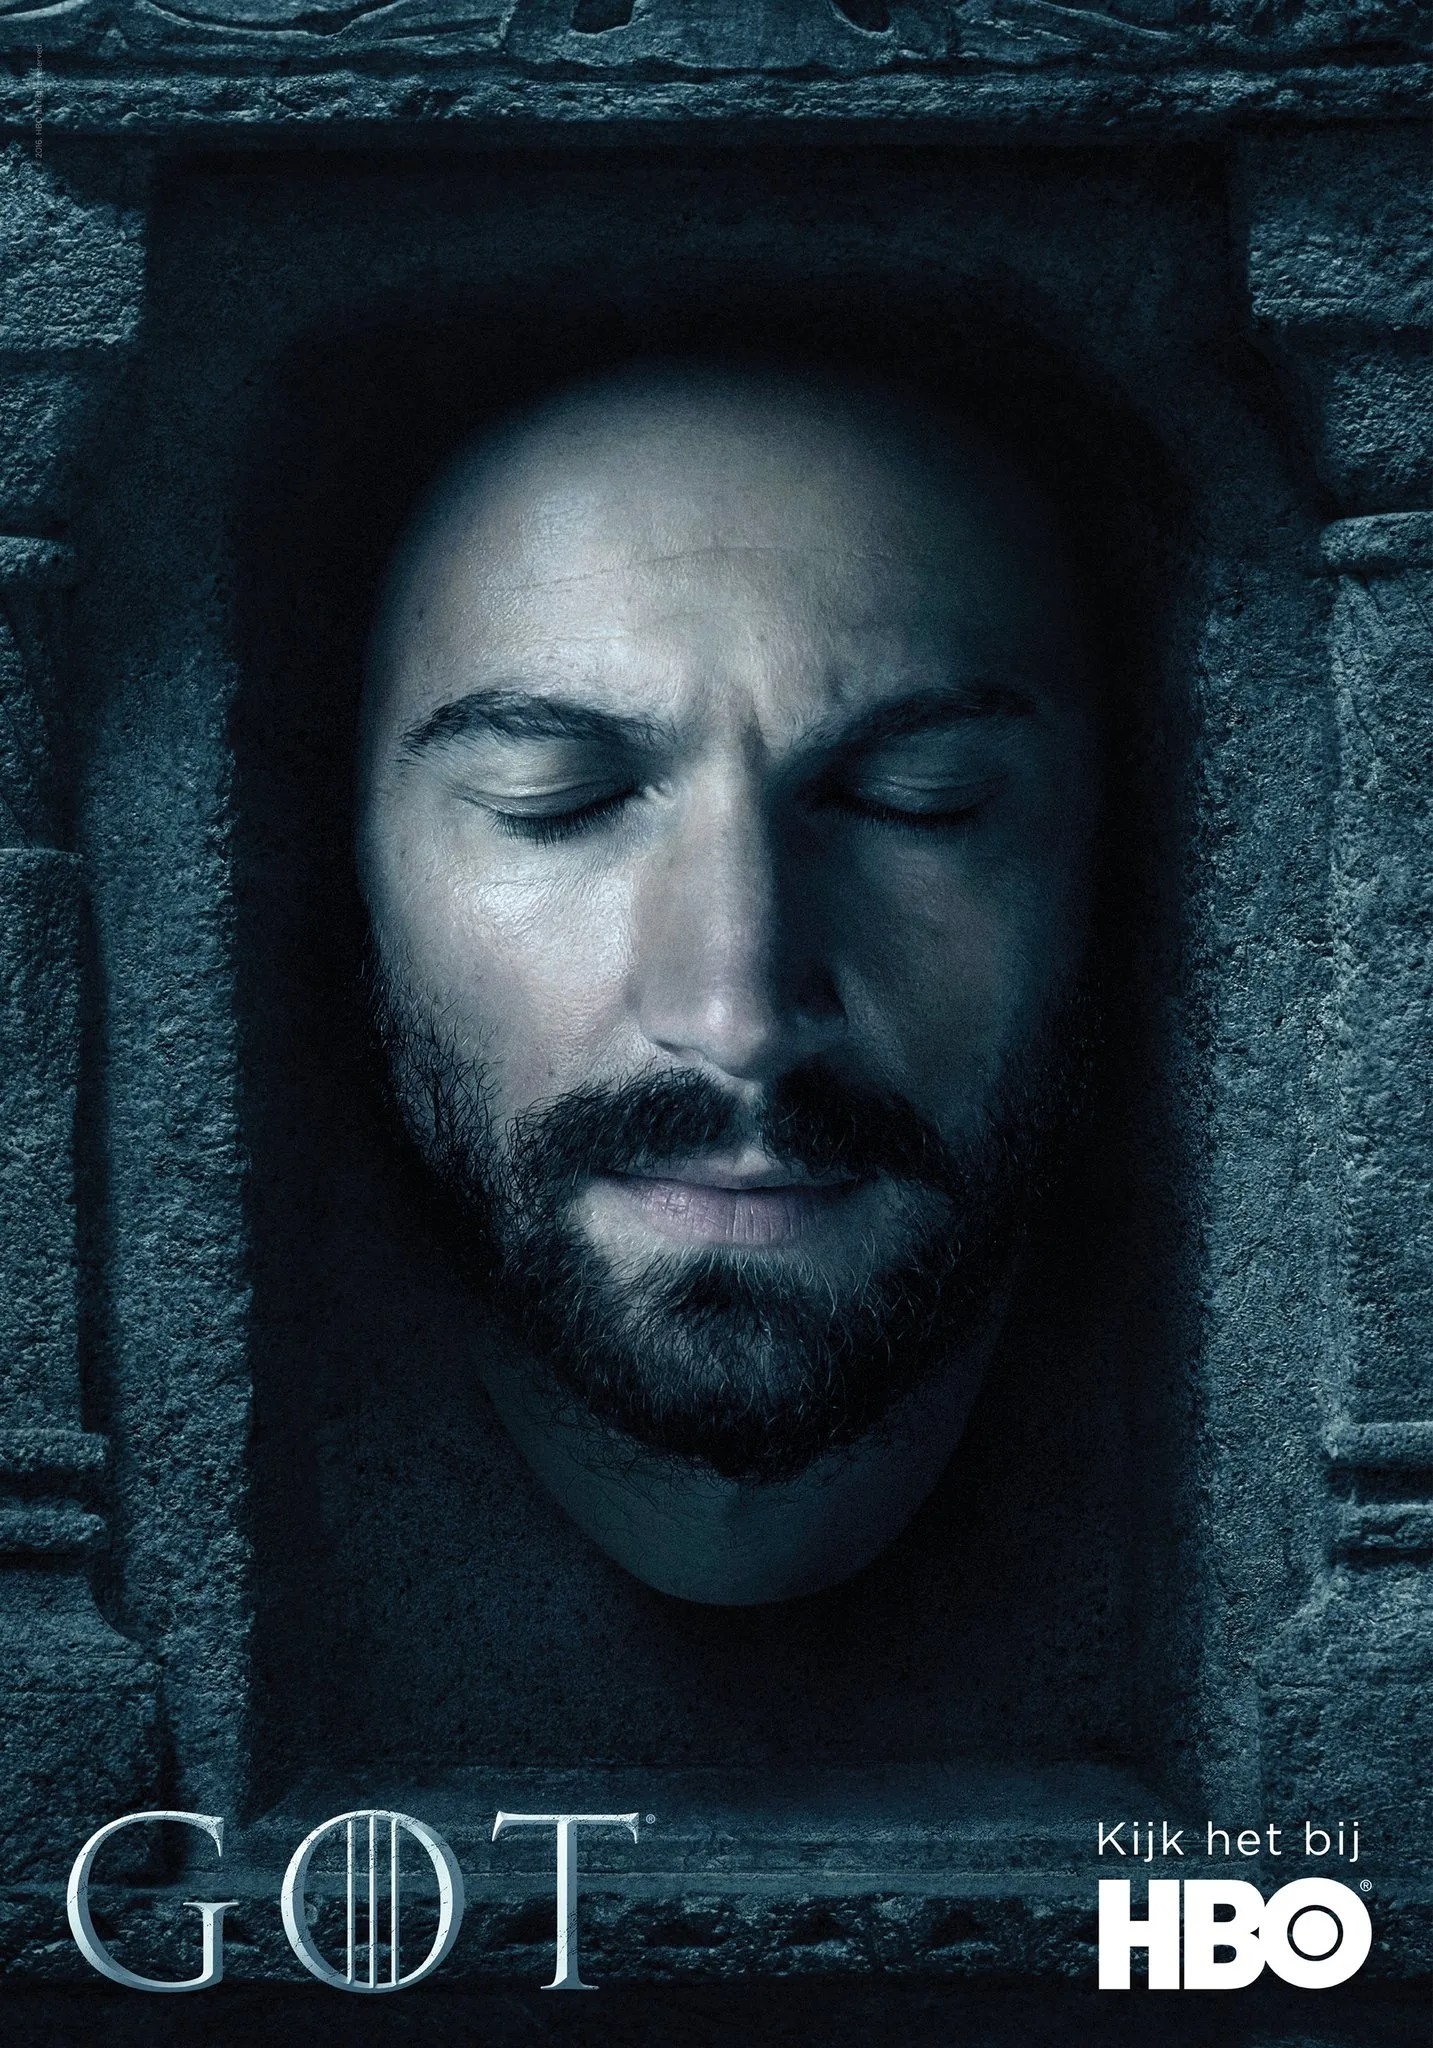 Game of Thrones Season 6 Posters Tease Character Deaths | Collider